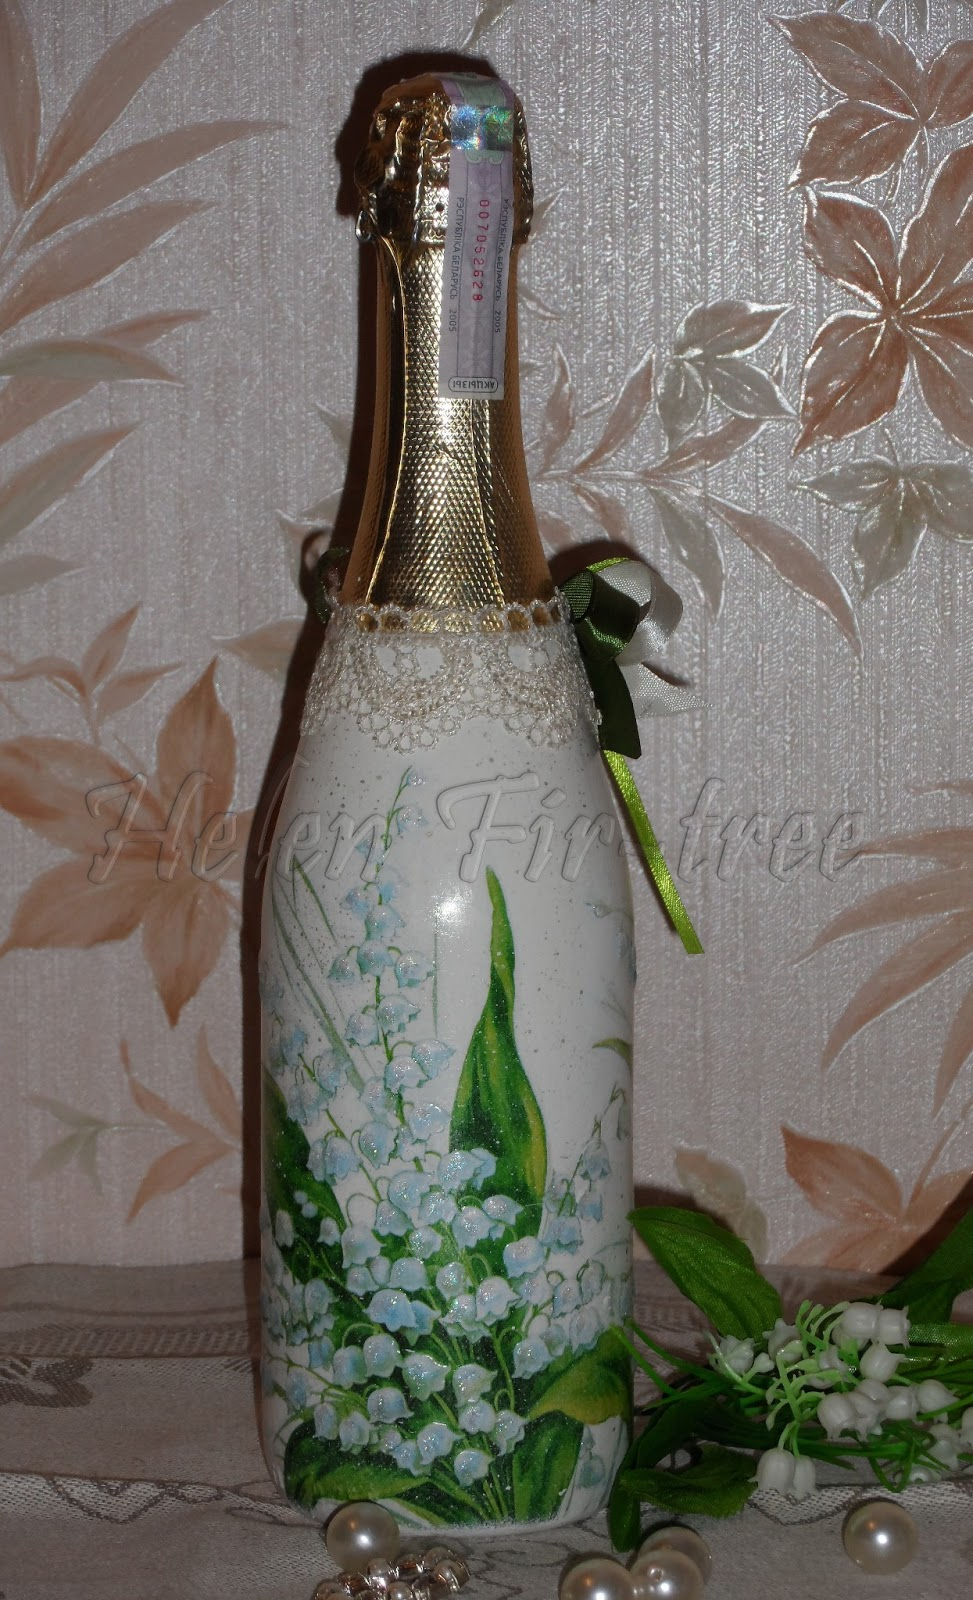 Helen Fir-tree декупаж бутылки decoupage bottle